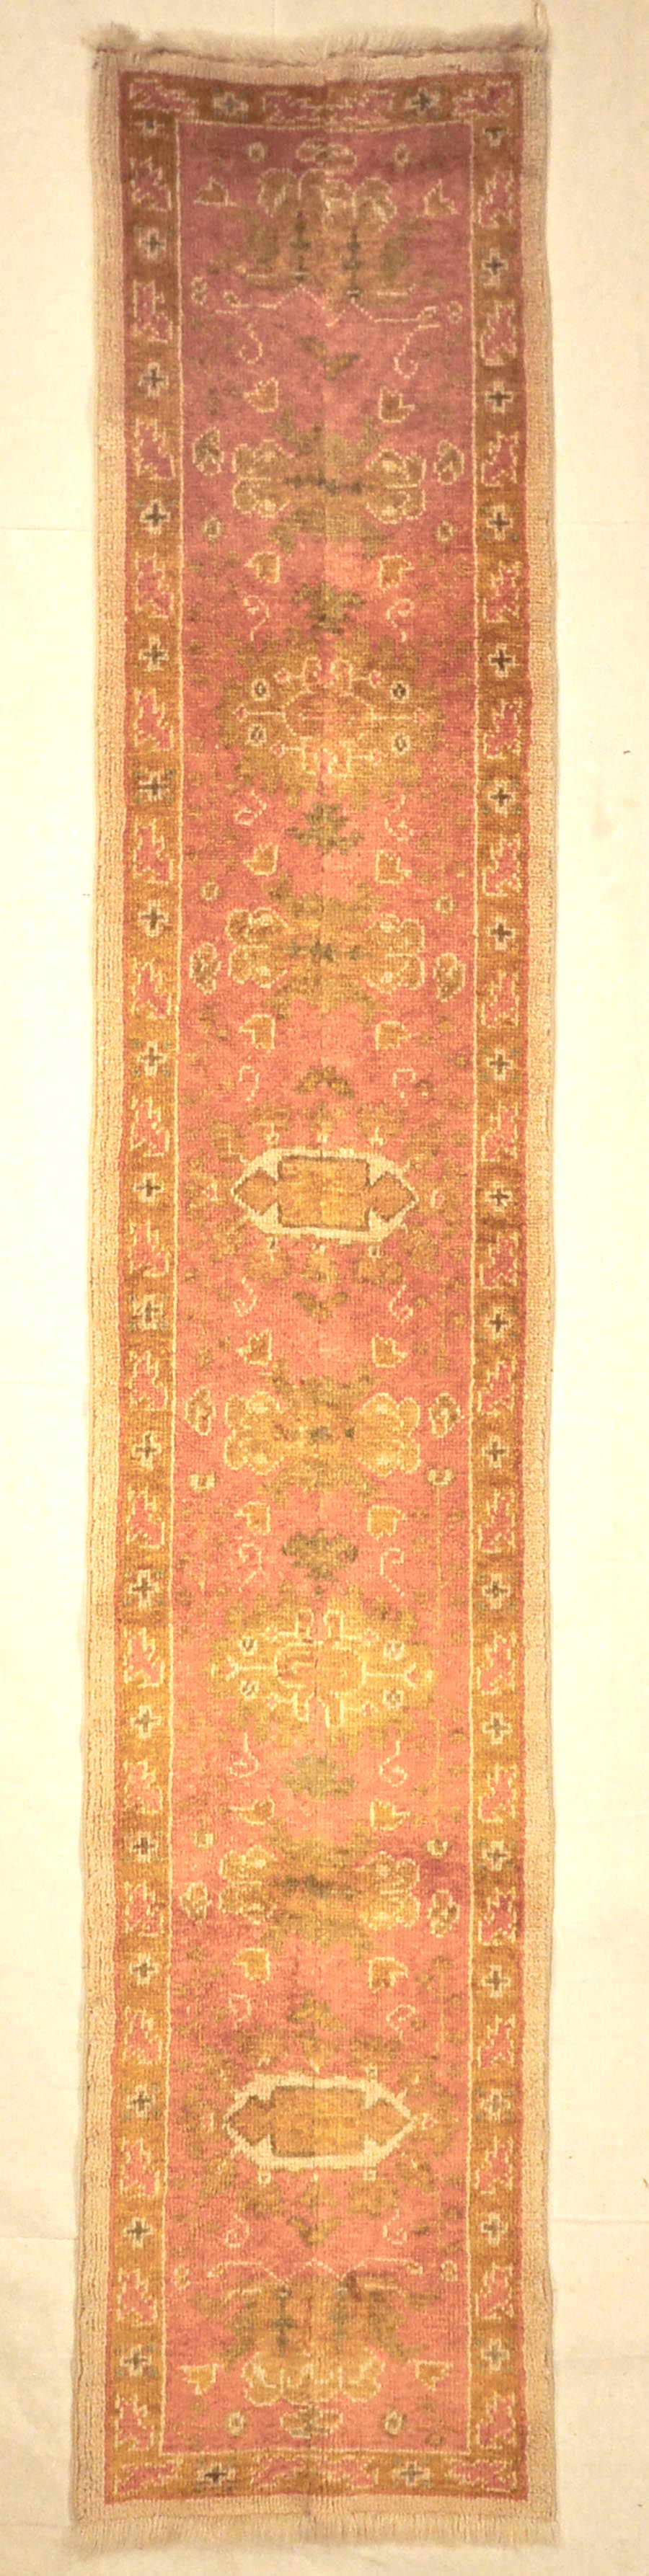 Turkish Oushak Runner | Rugs and More | Santa Barbara Design Center